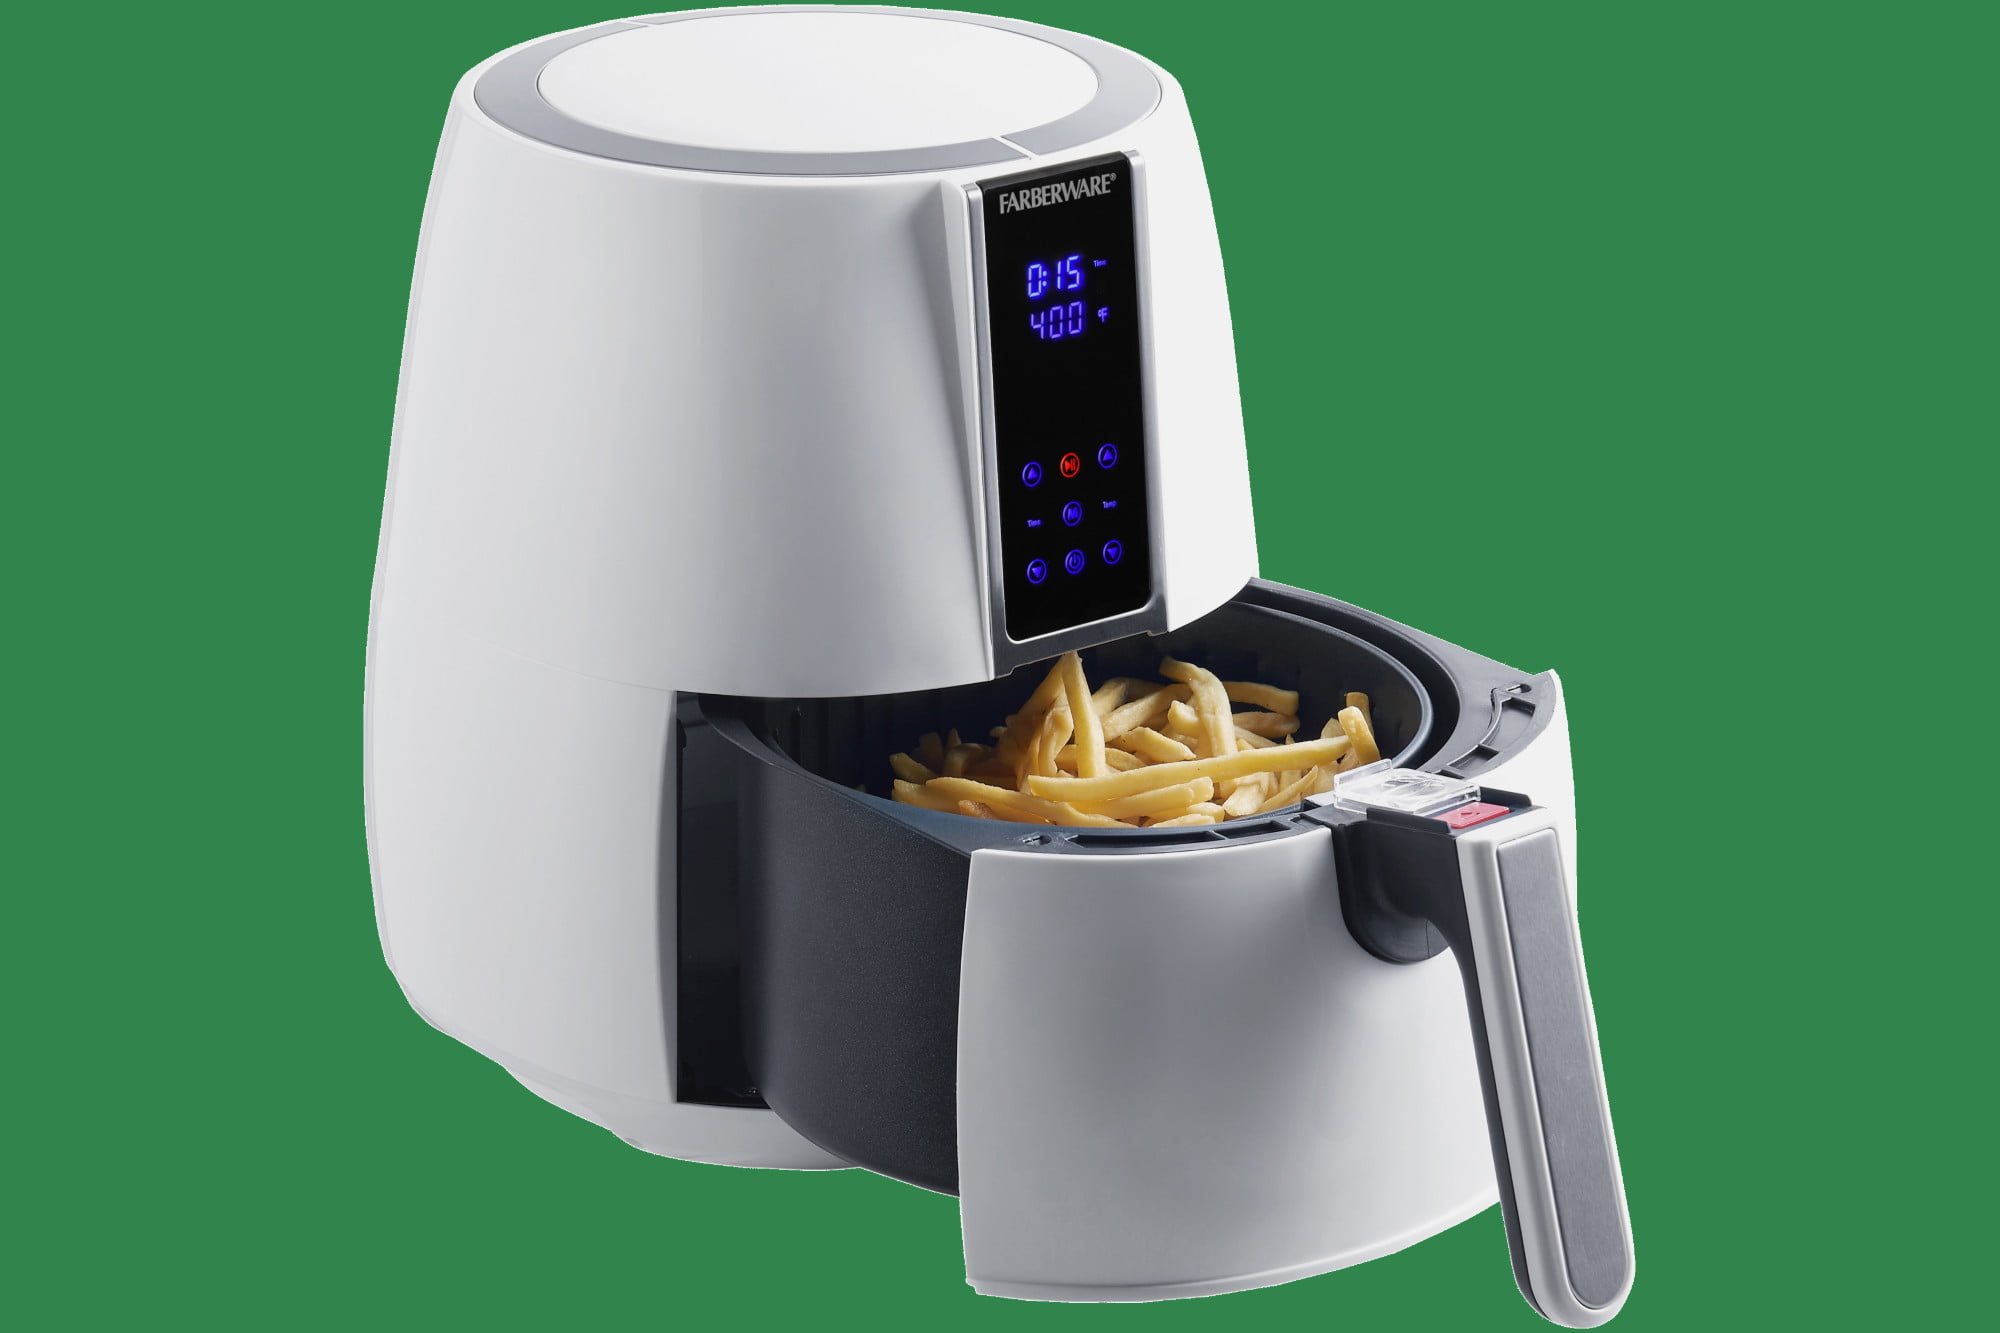 walmart drops prices on air fryers from emeril farberware and power 3 2 quart digital oil less fryer